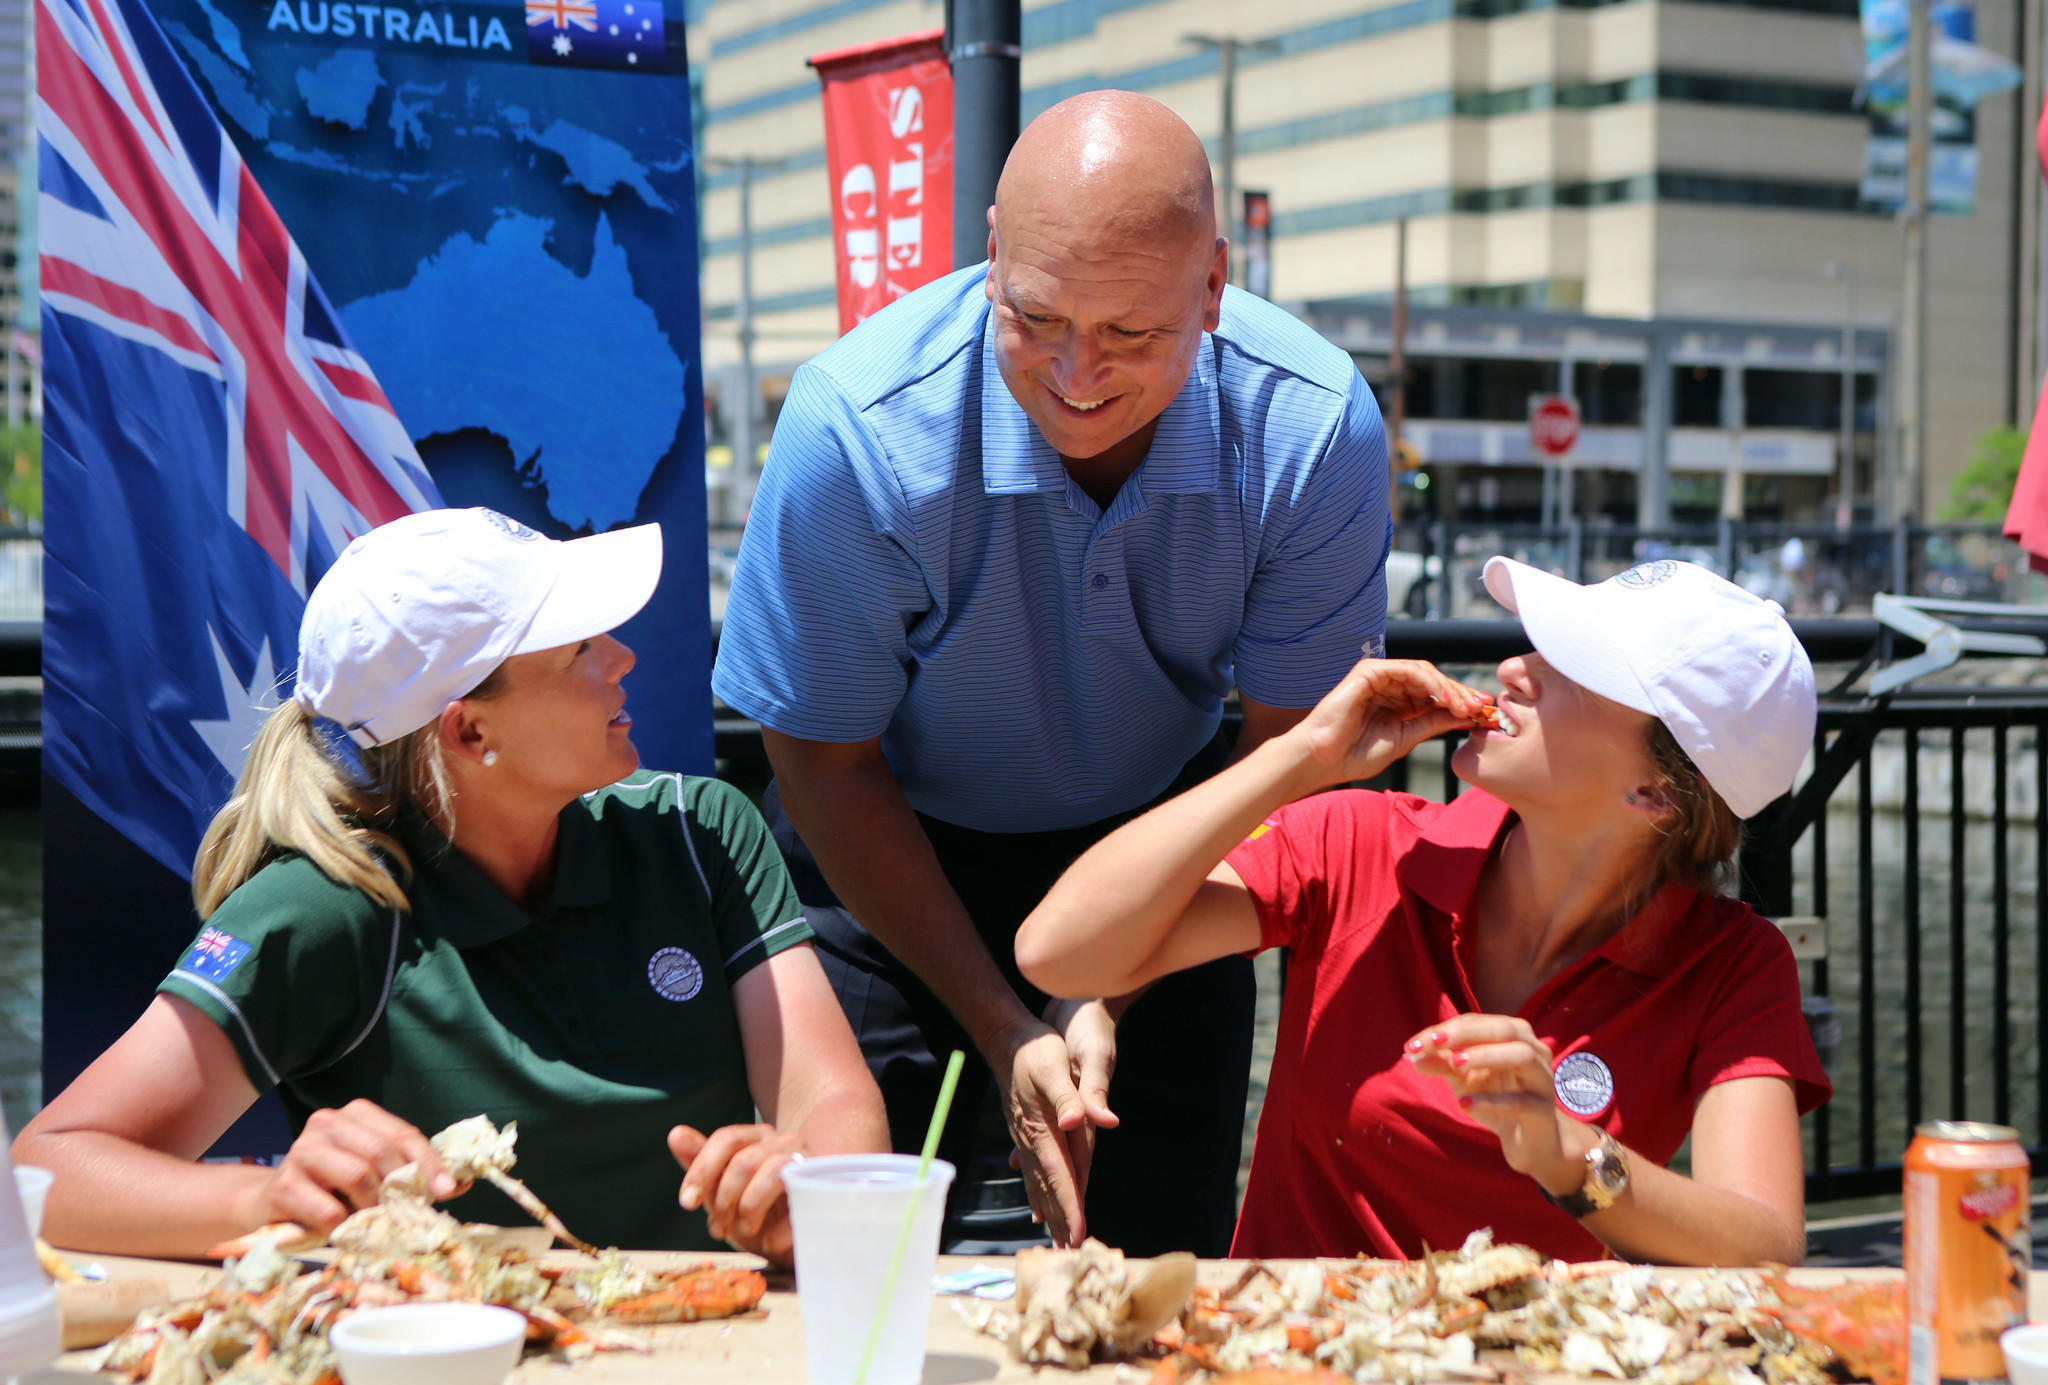 Baseball legend Cal Ripken, Jr., helps members Katherine Kirk (left) and Belen Mozo (right) of the Ladies Professional Golf Association crack crabs at Phillips Seafood on Pratt St. The event was used to promote the inaugural LPGA International Crown which will take place July 24-27, 2014 at Caves Valley Golf Club in Owings Mills.